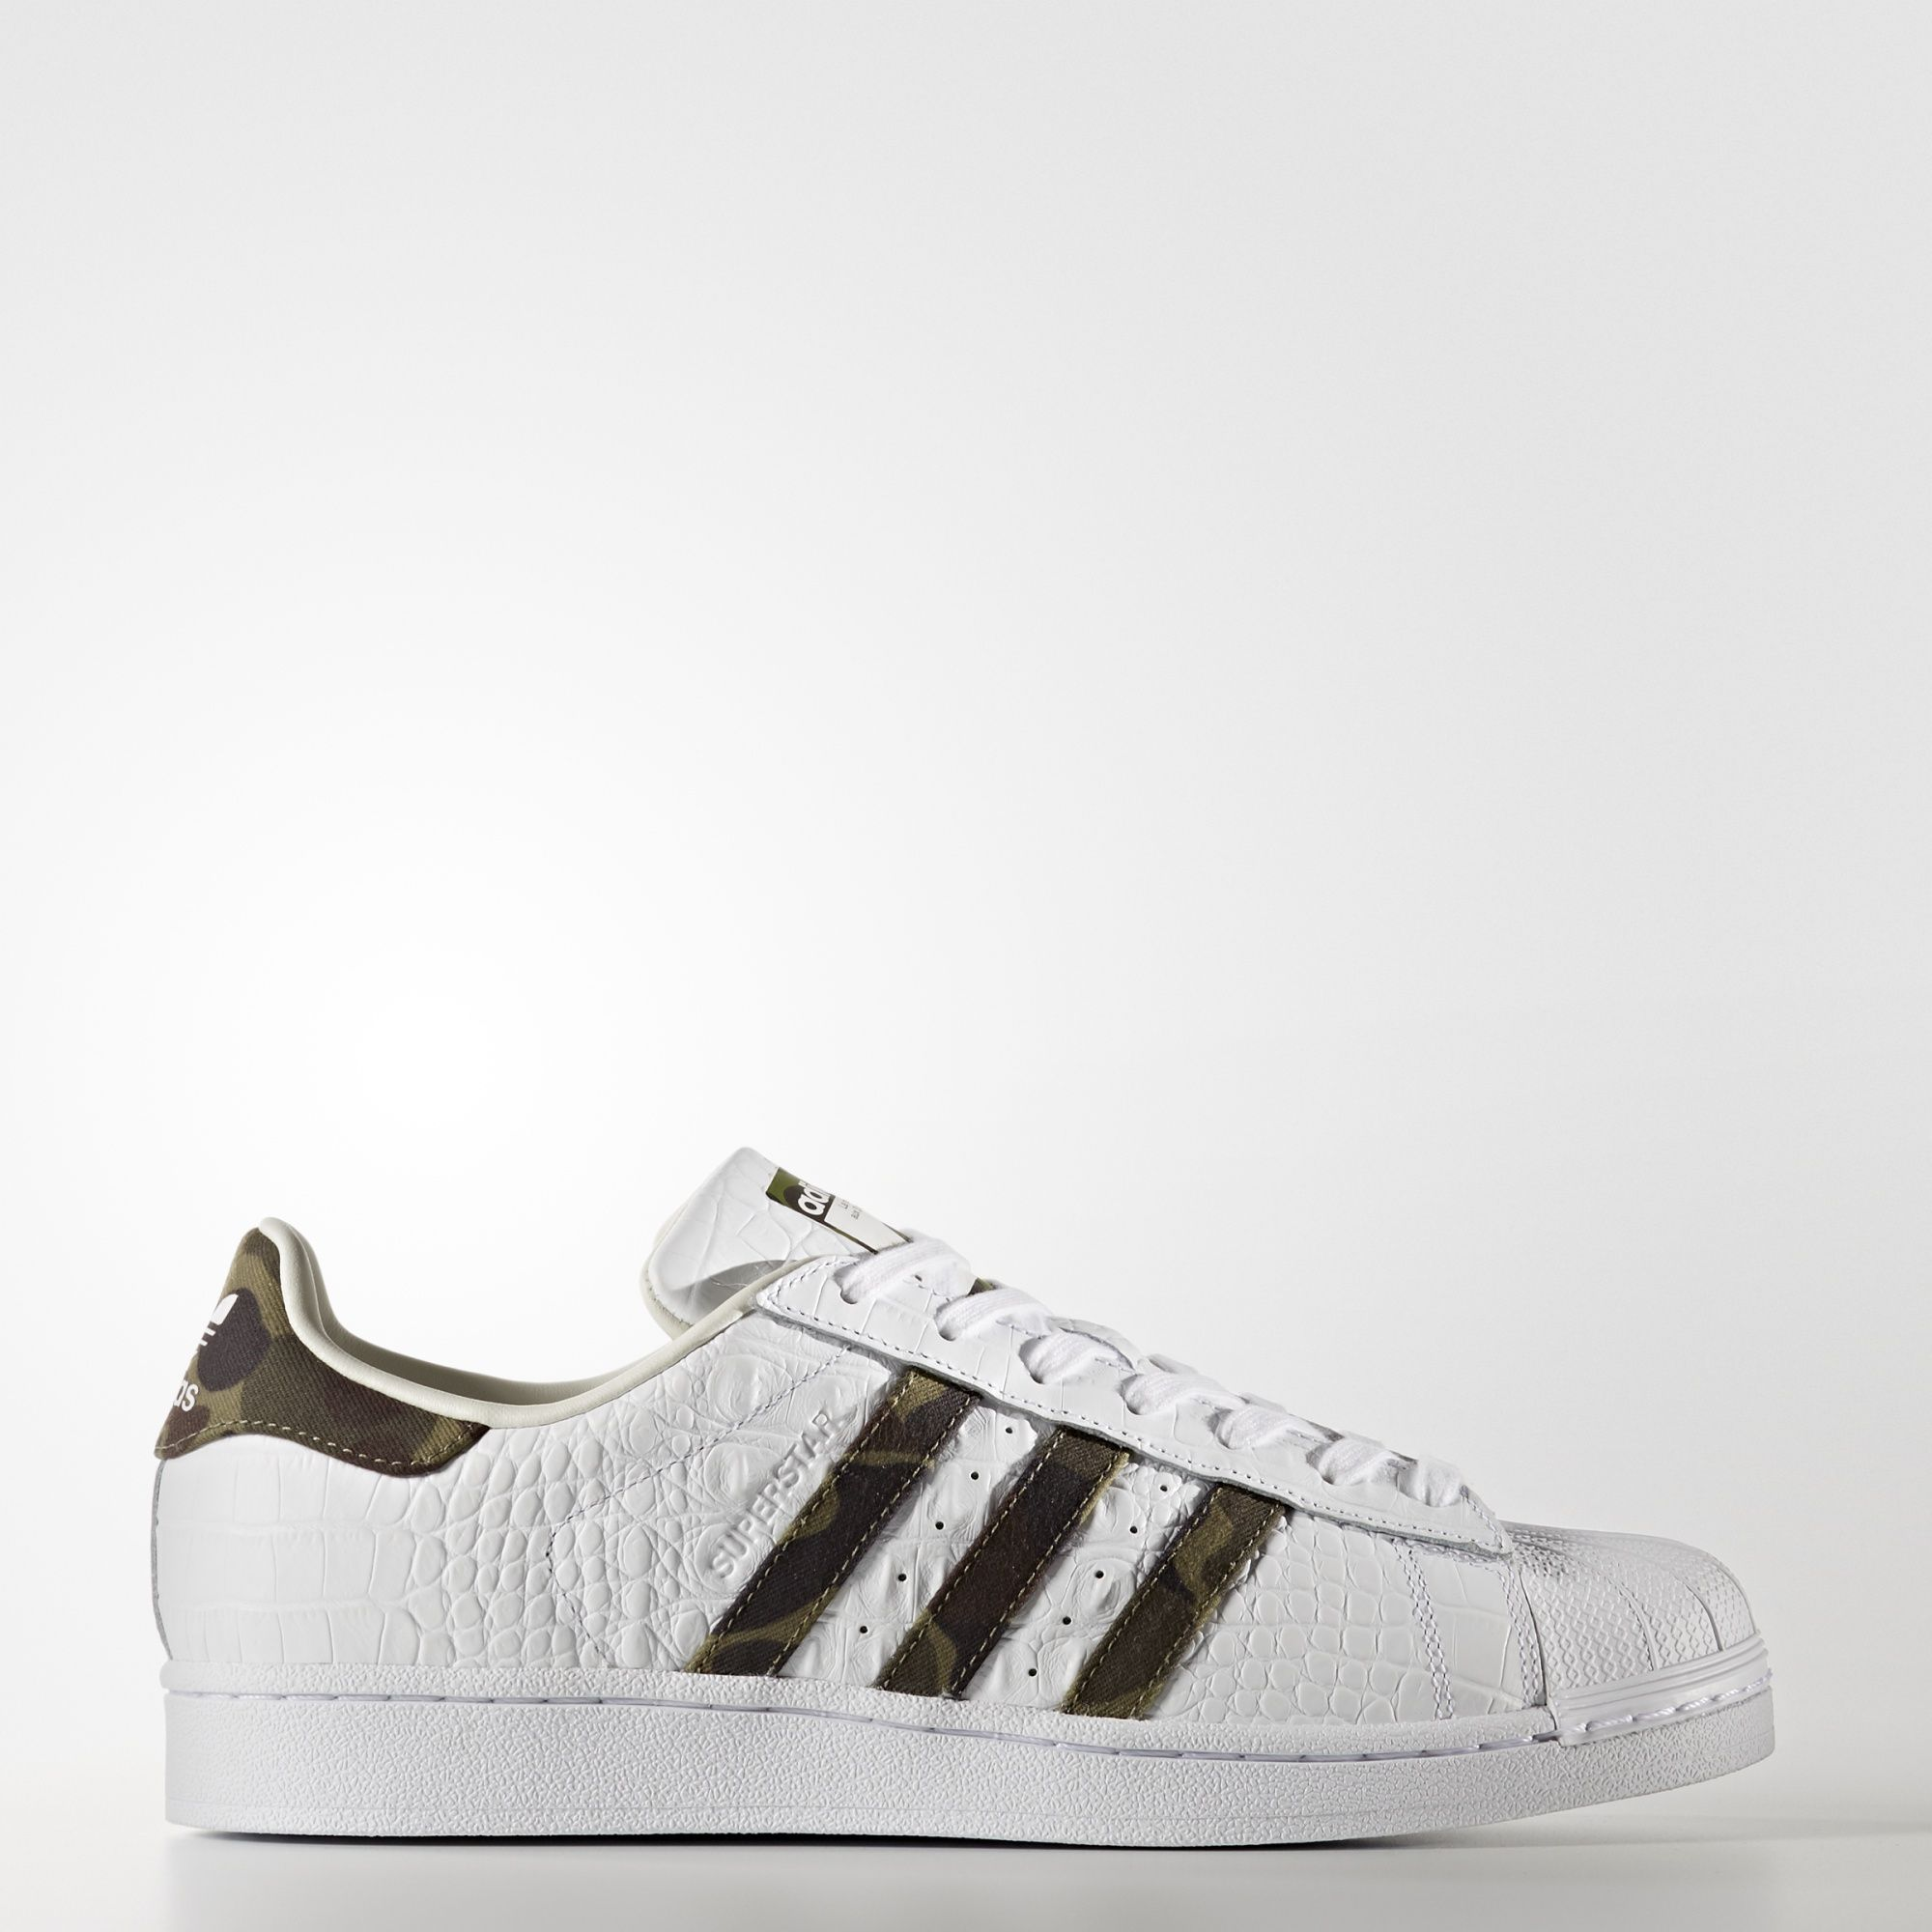 adidas originals superstar leder shell blauw wit